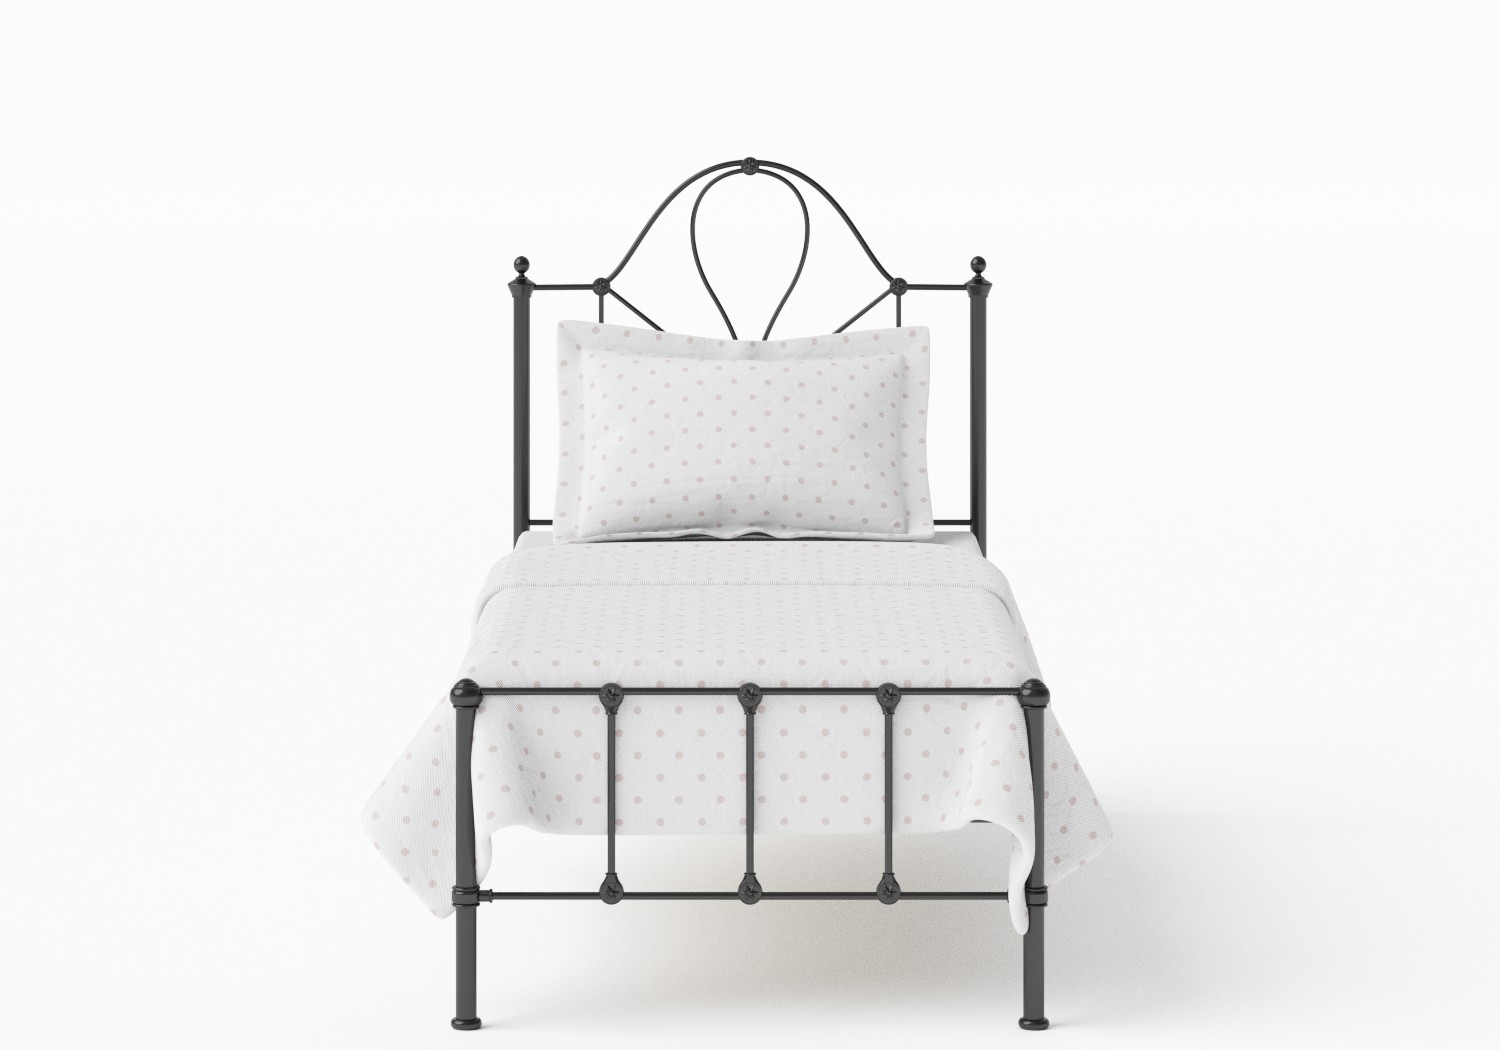 Athena Single Iron/Metal Bed in Satin Black